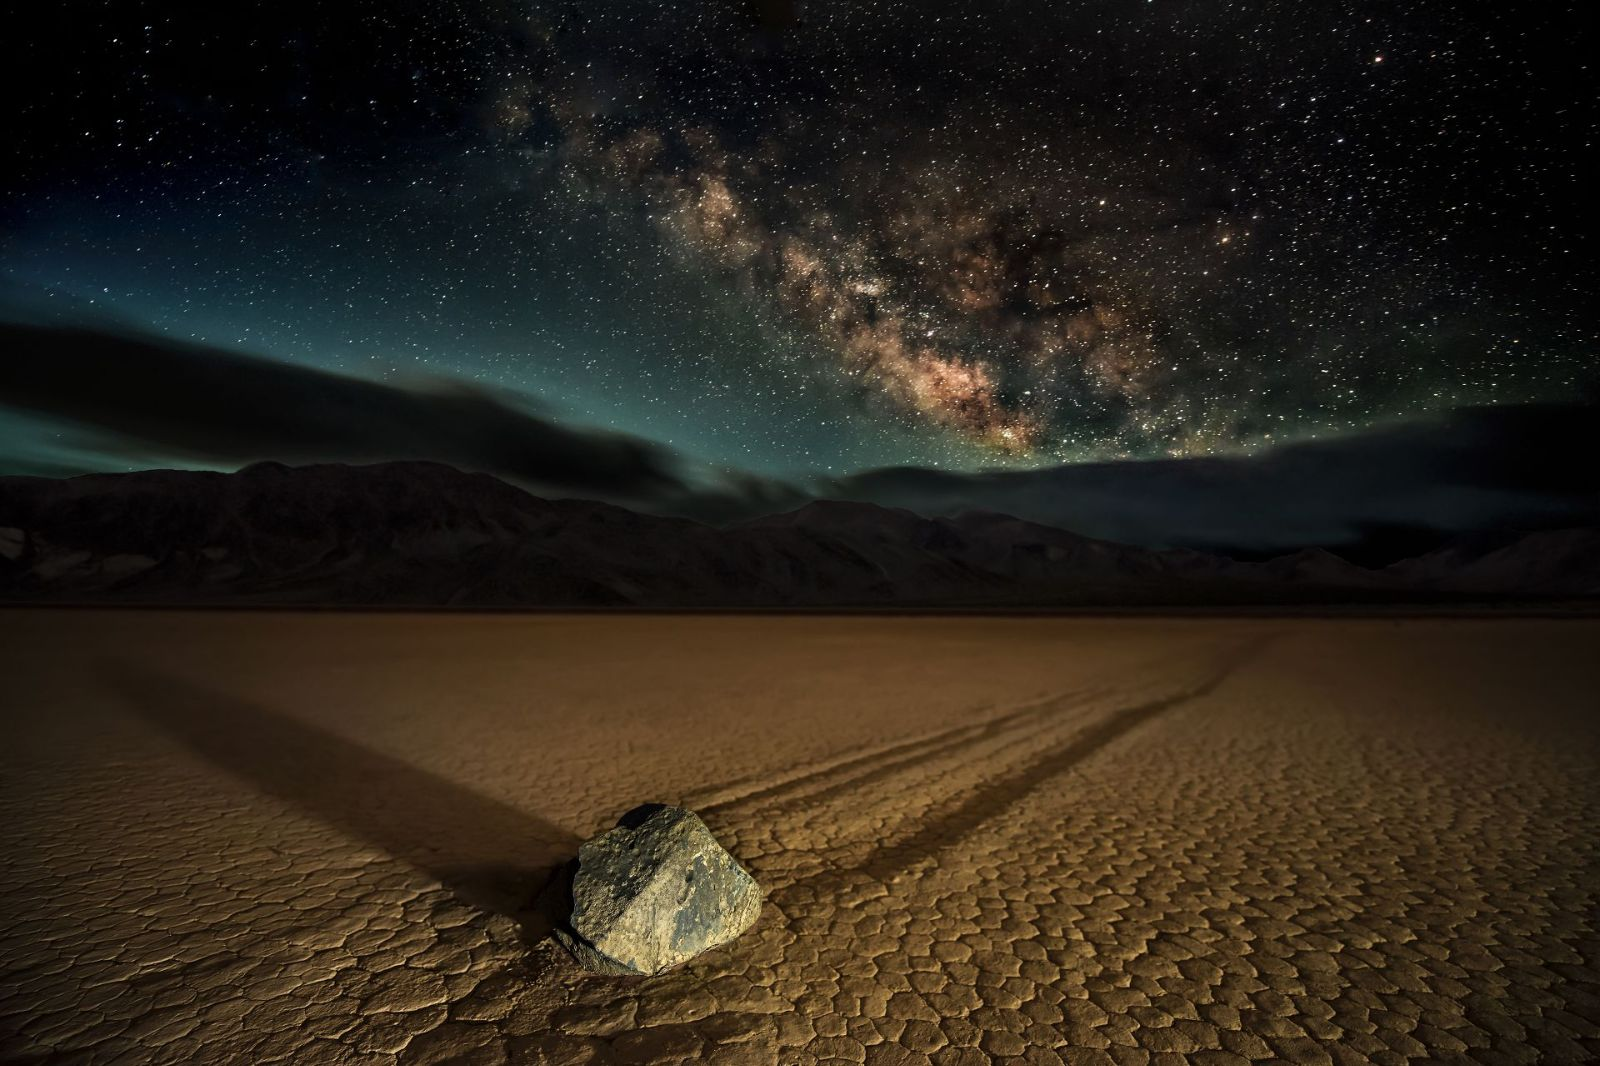 A Death Valley sky and night impression